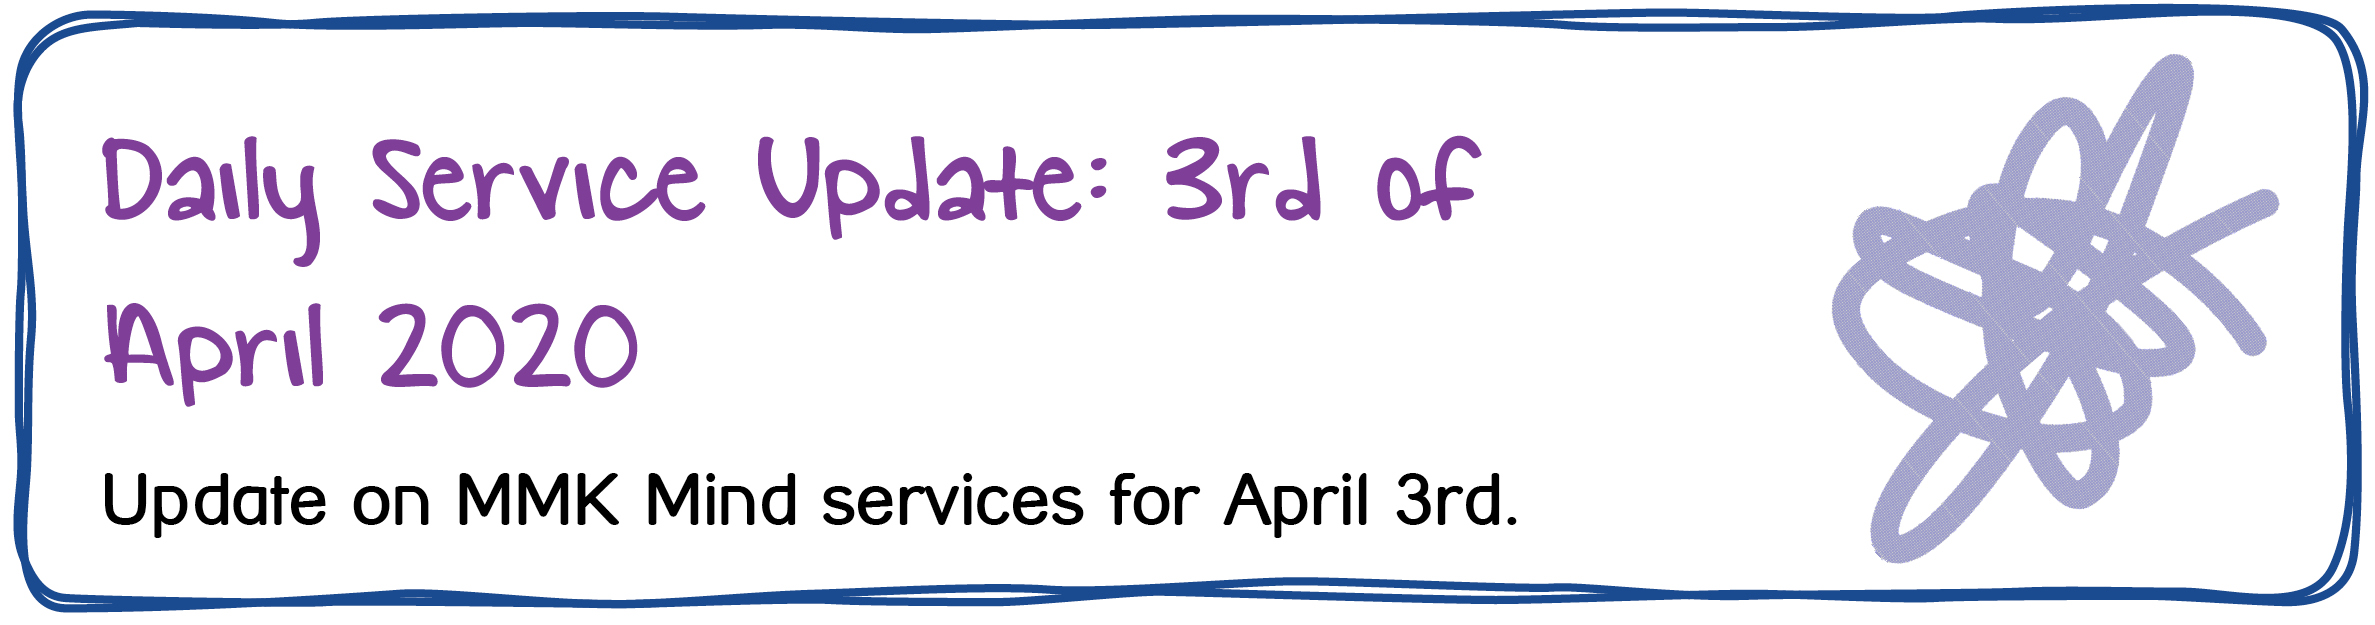 Daily Service Update: 3rd of April 2020. Update on MMK Mind services for April 3rd.